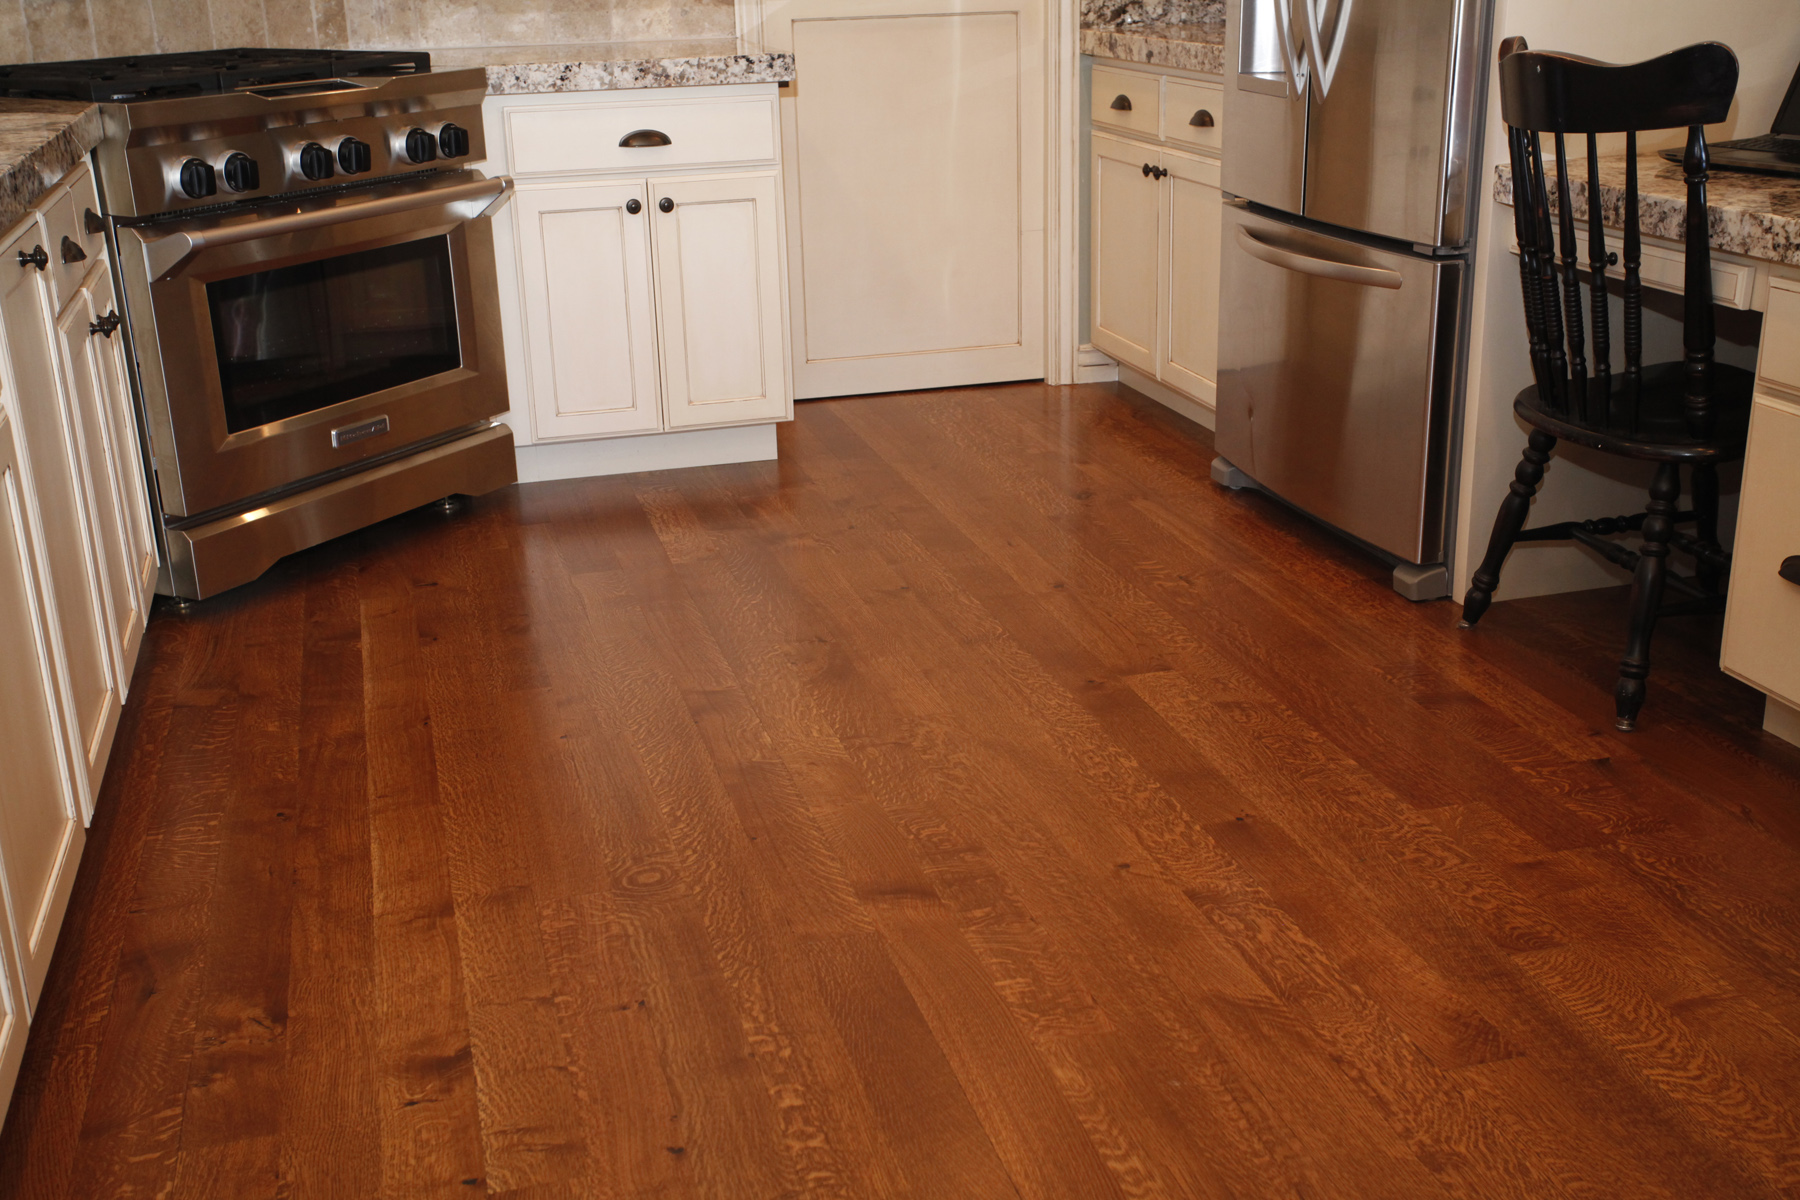 Carson s custom hardwood floors utah hardwood flooring for Wood flooring kitchen ideas